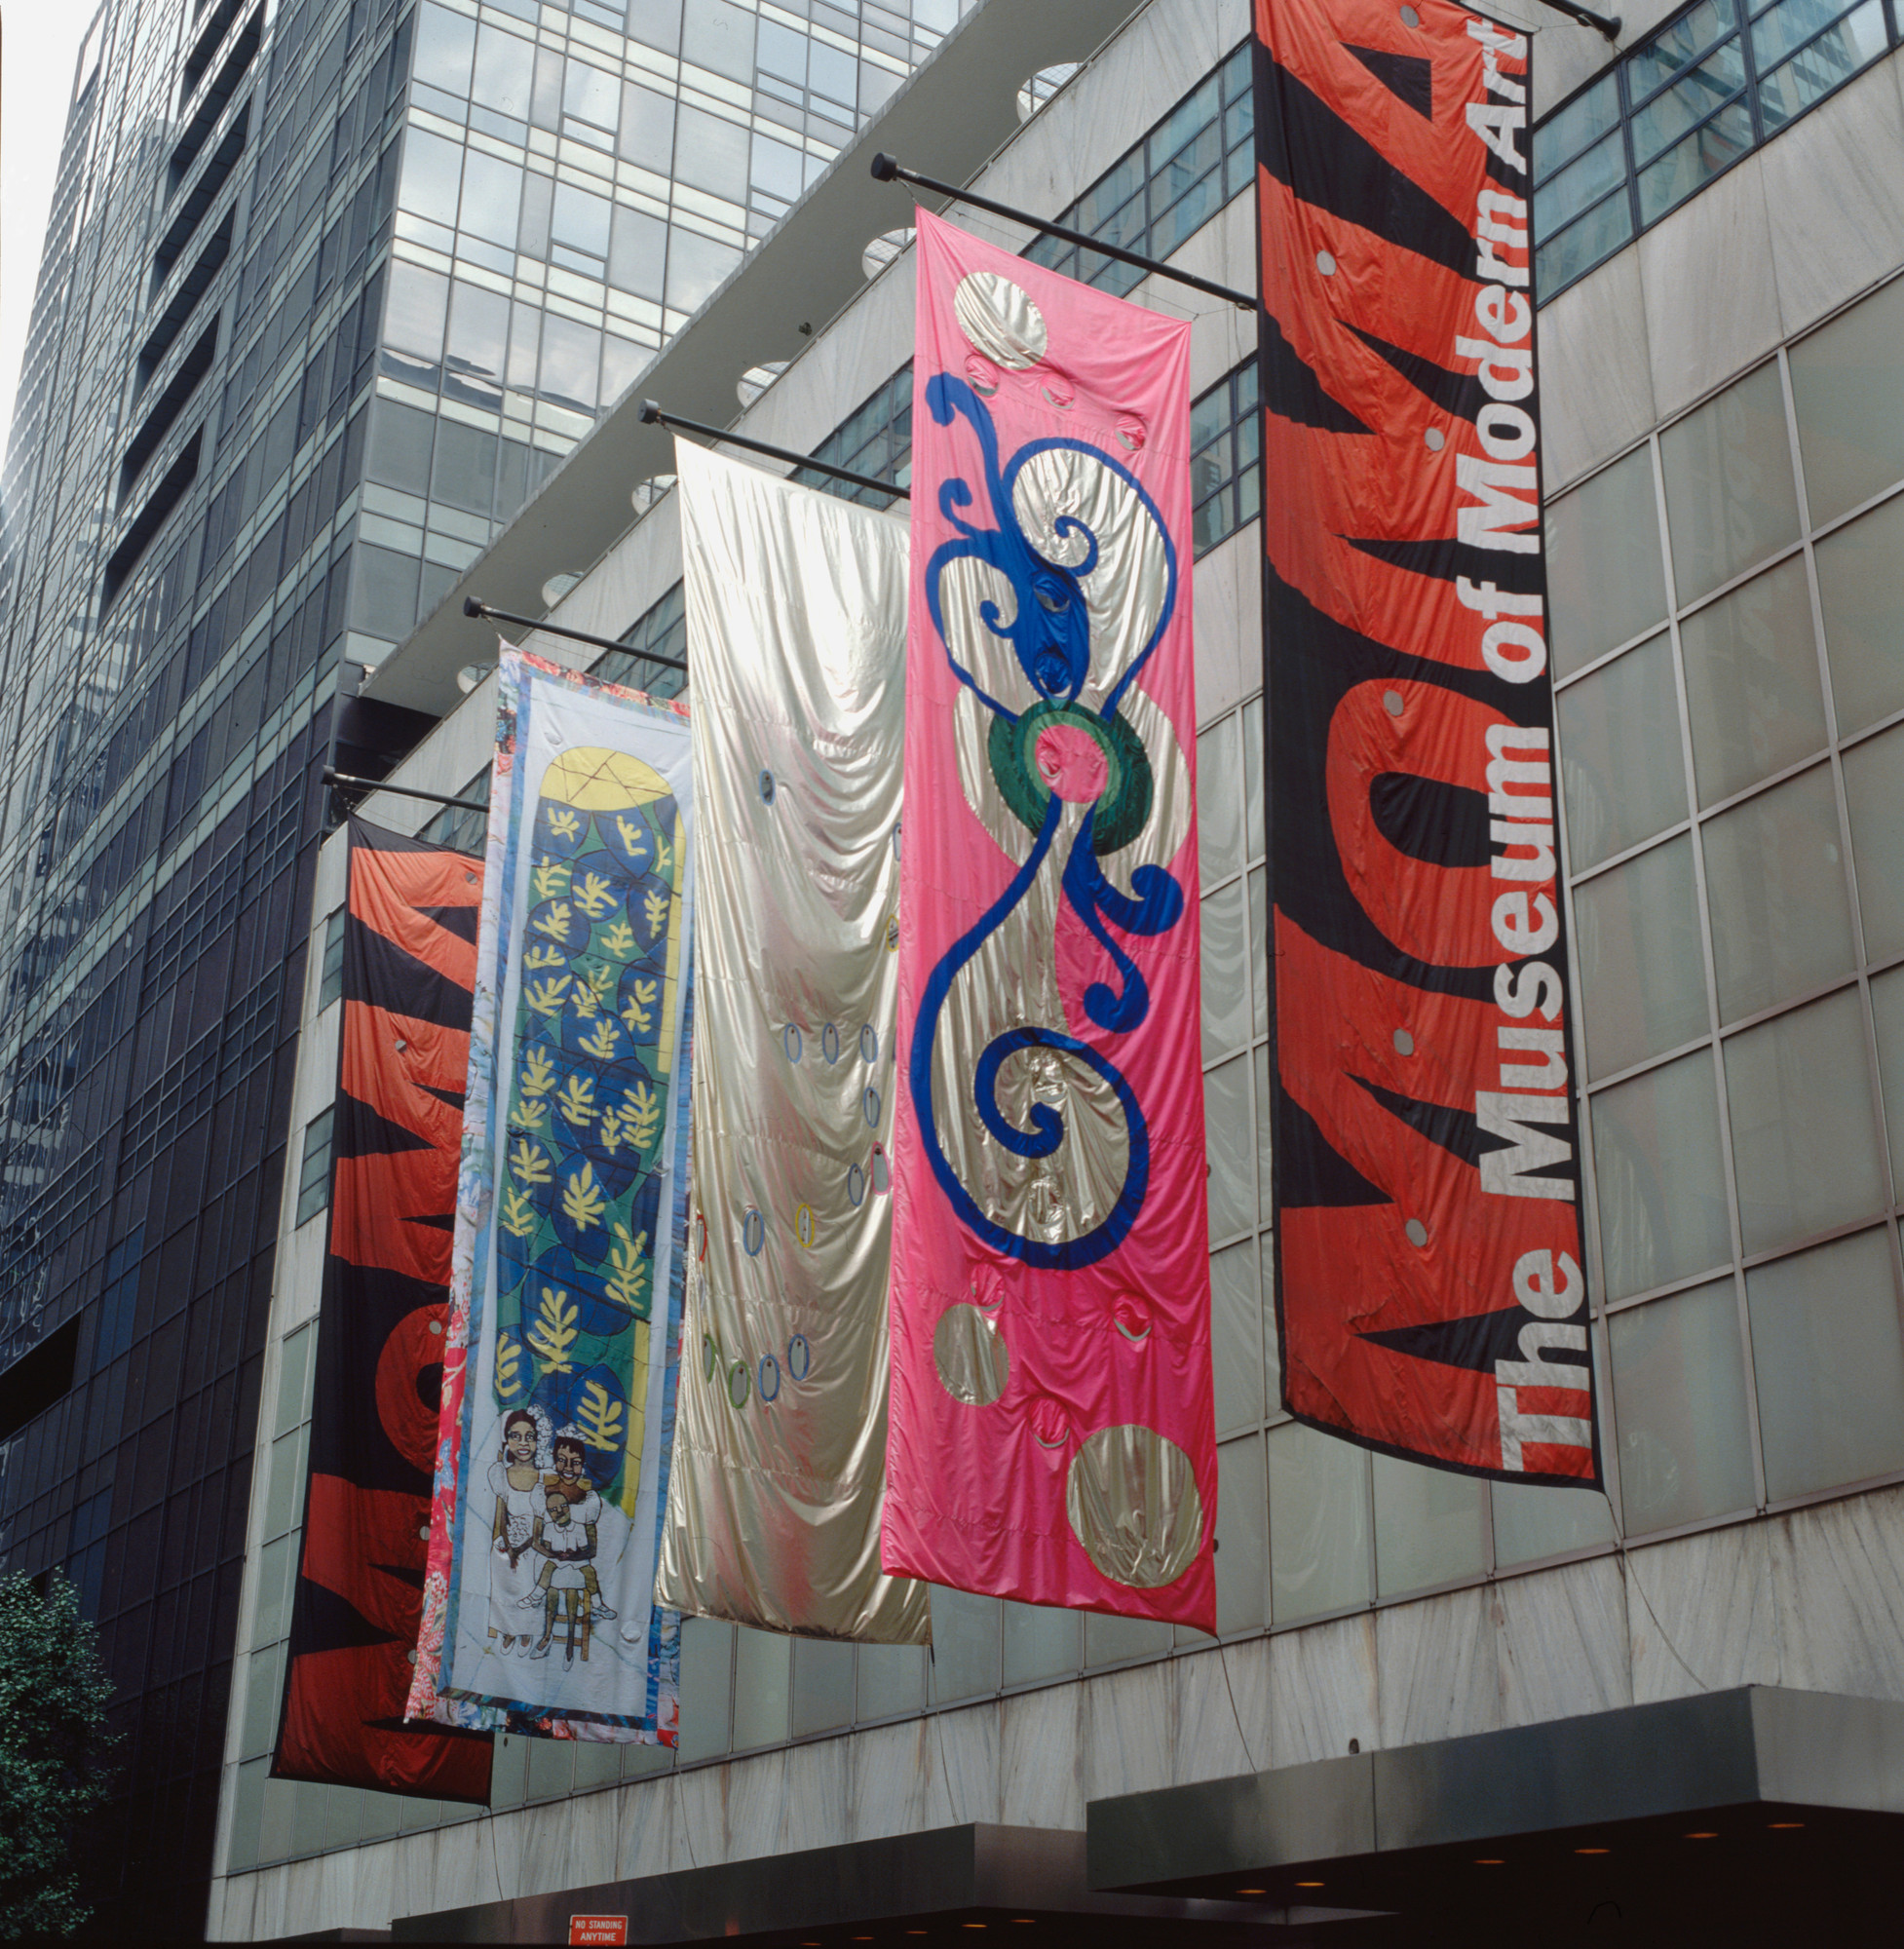 Installation view of Projects 70: Jim Hodges, Beatriz Milhazes, Faith Ringgold (Banners, Series 2) at The Museum of Modern Art, New York